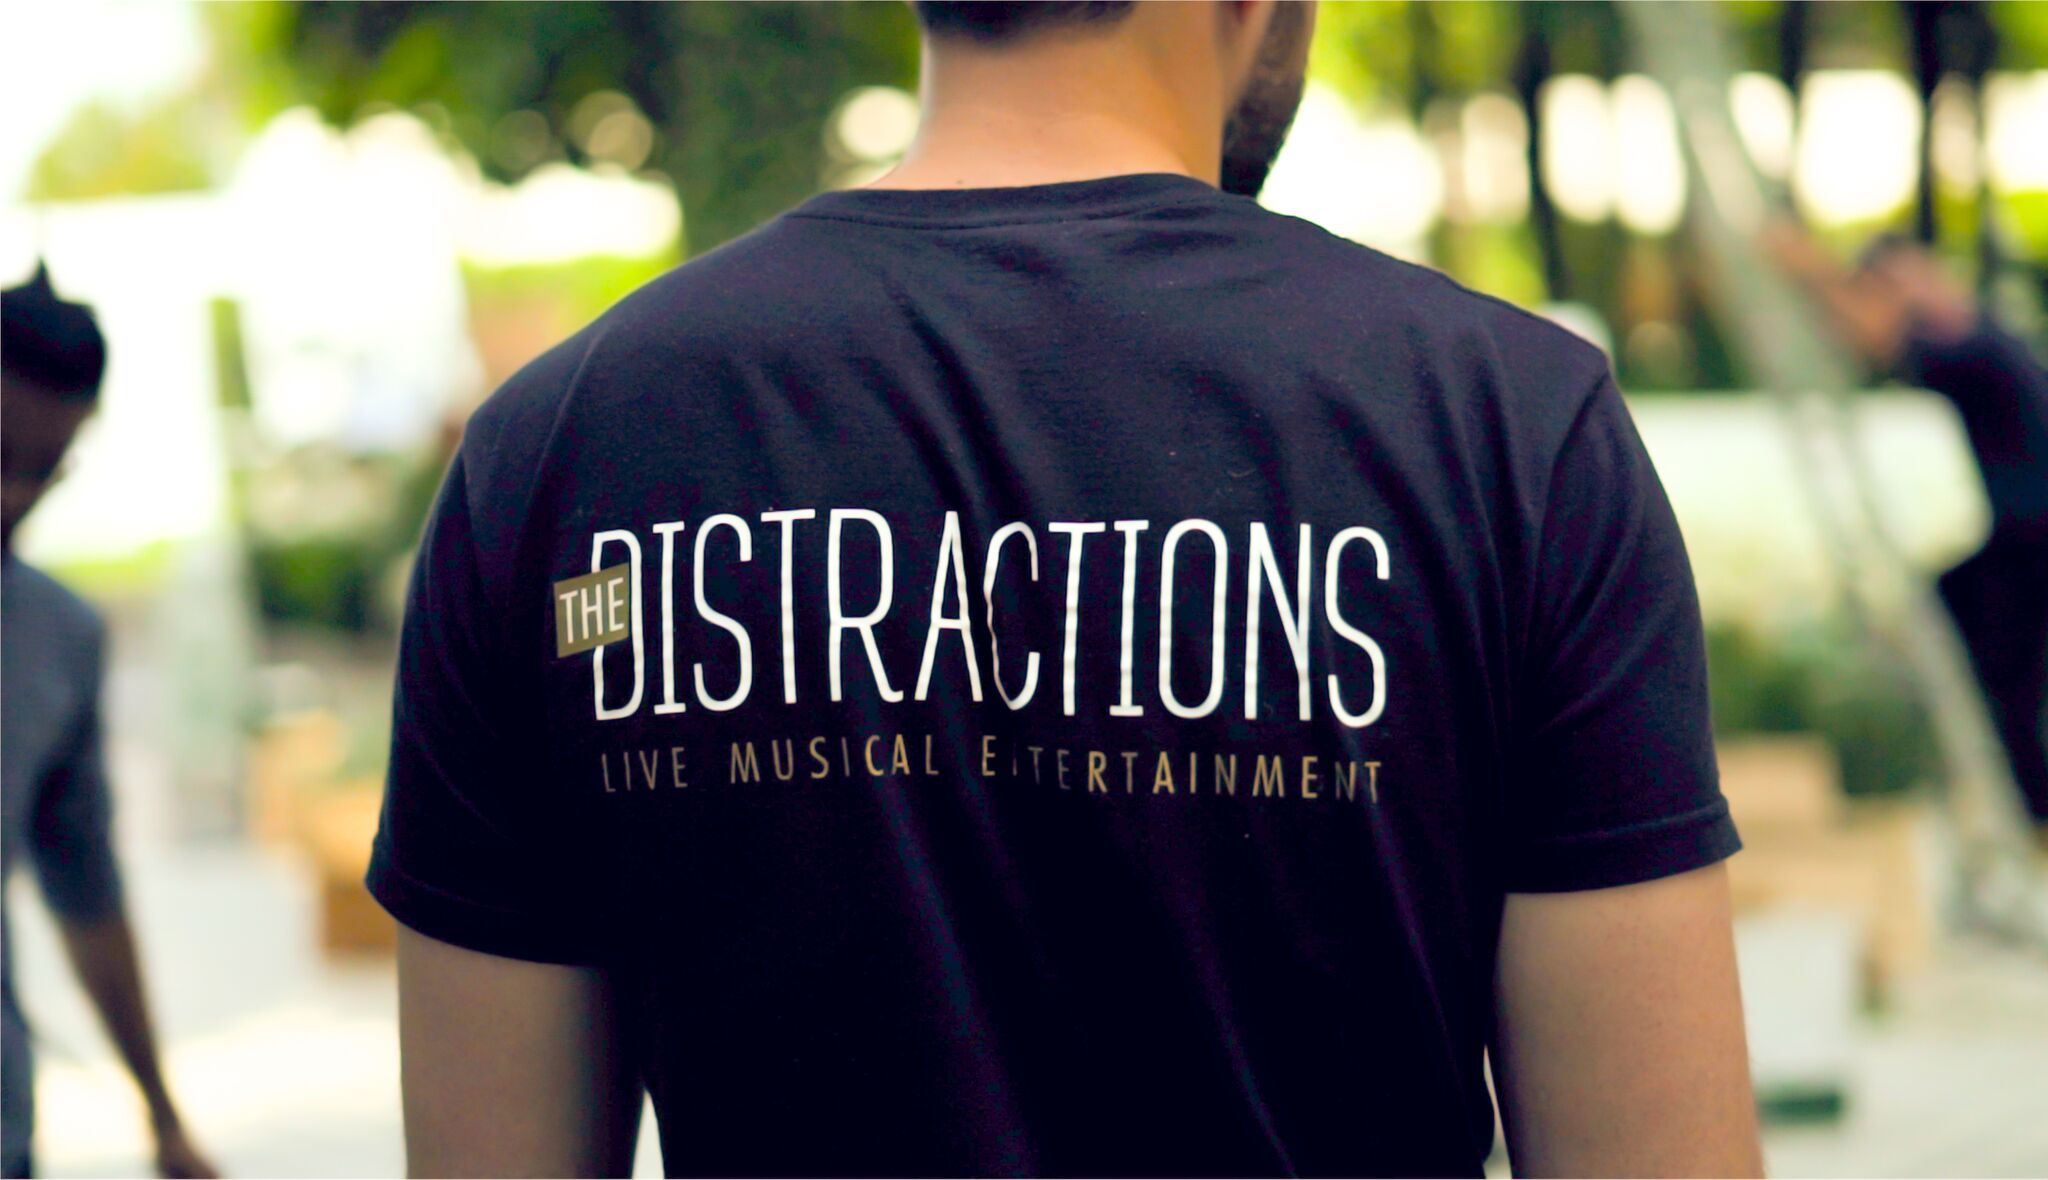 The Distractions T-Shirt